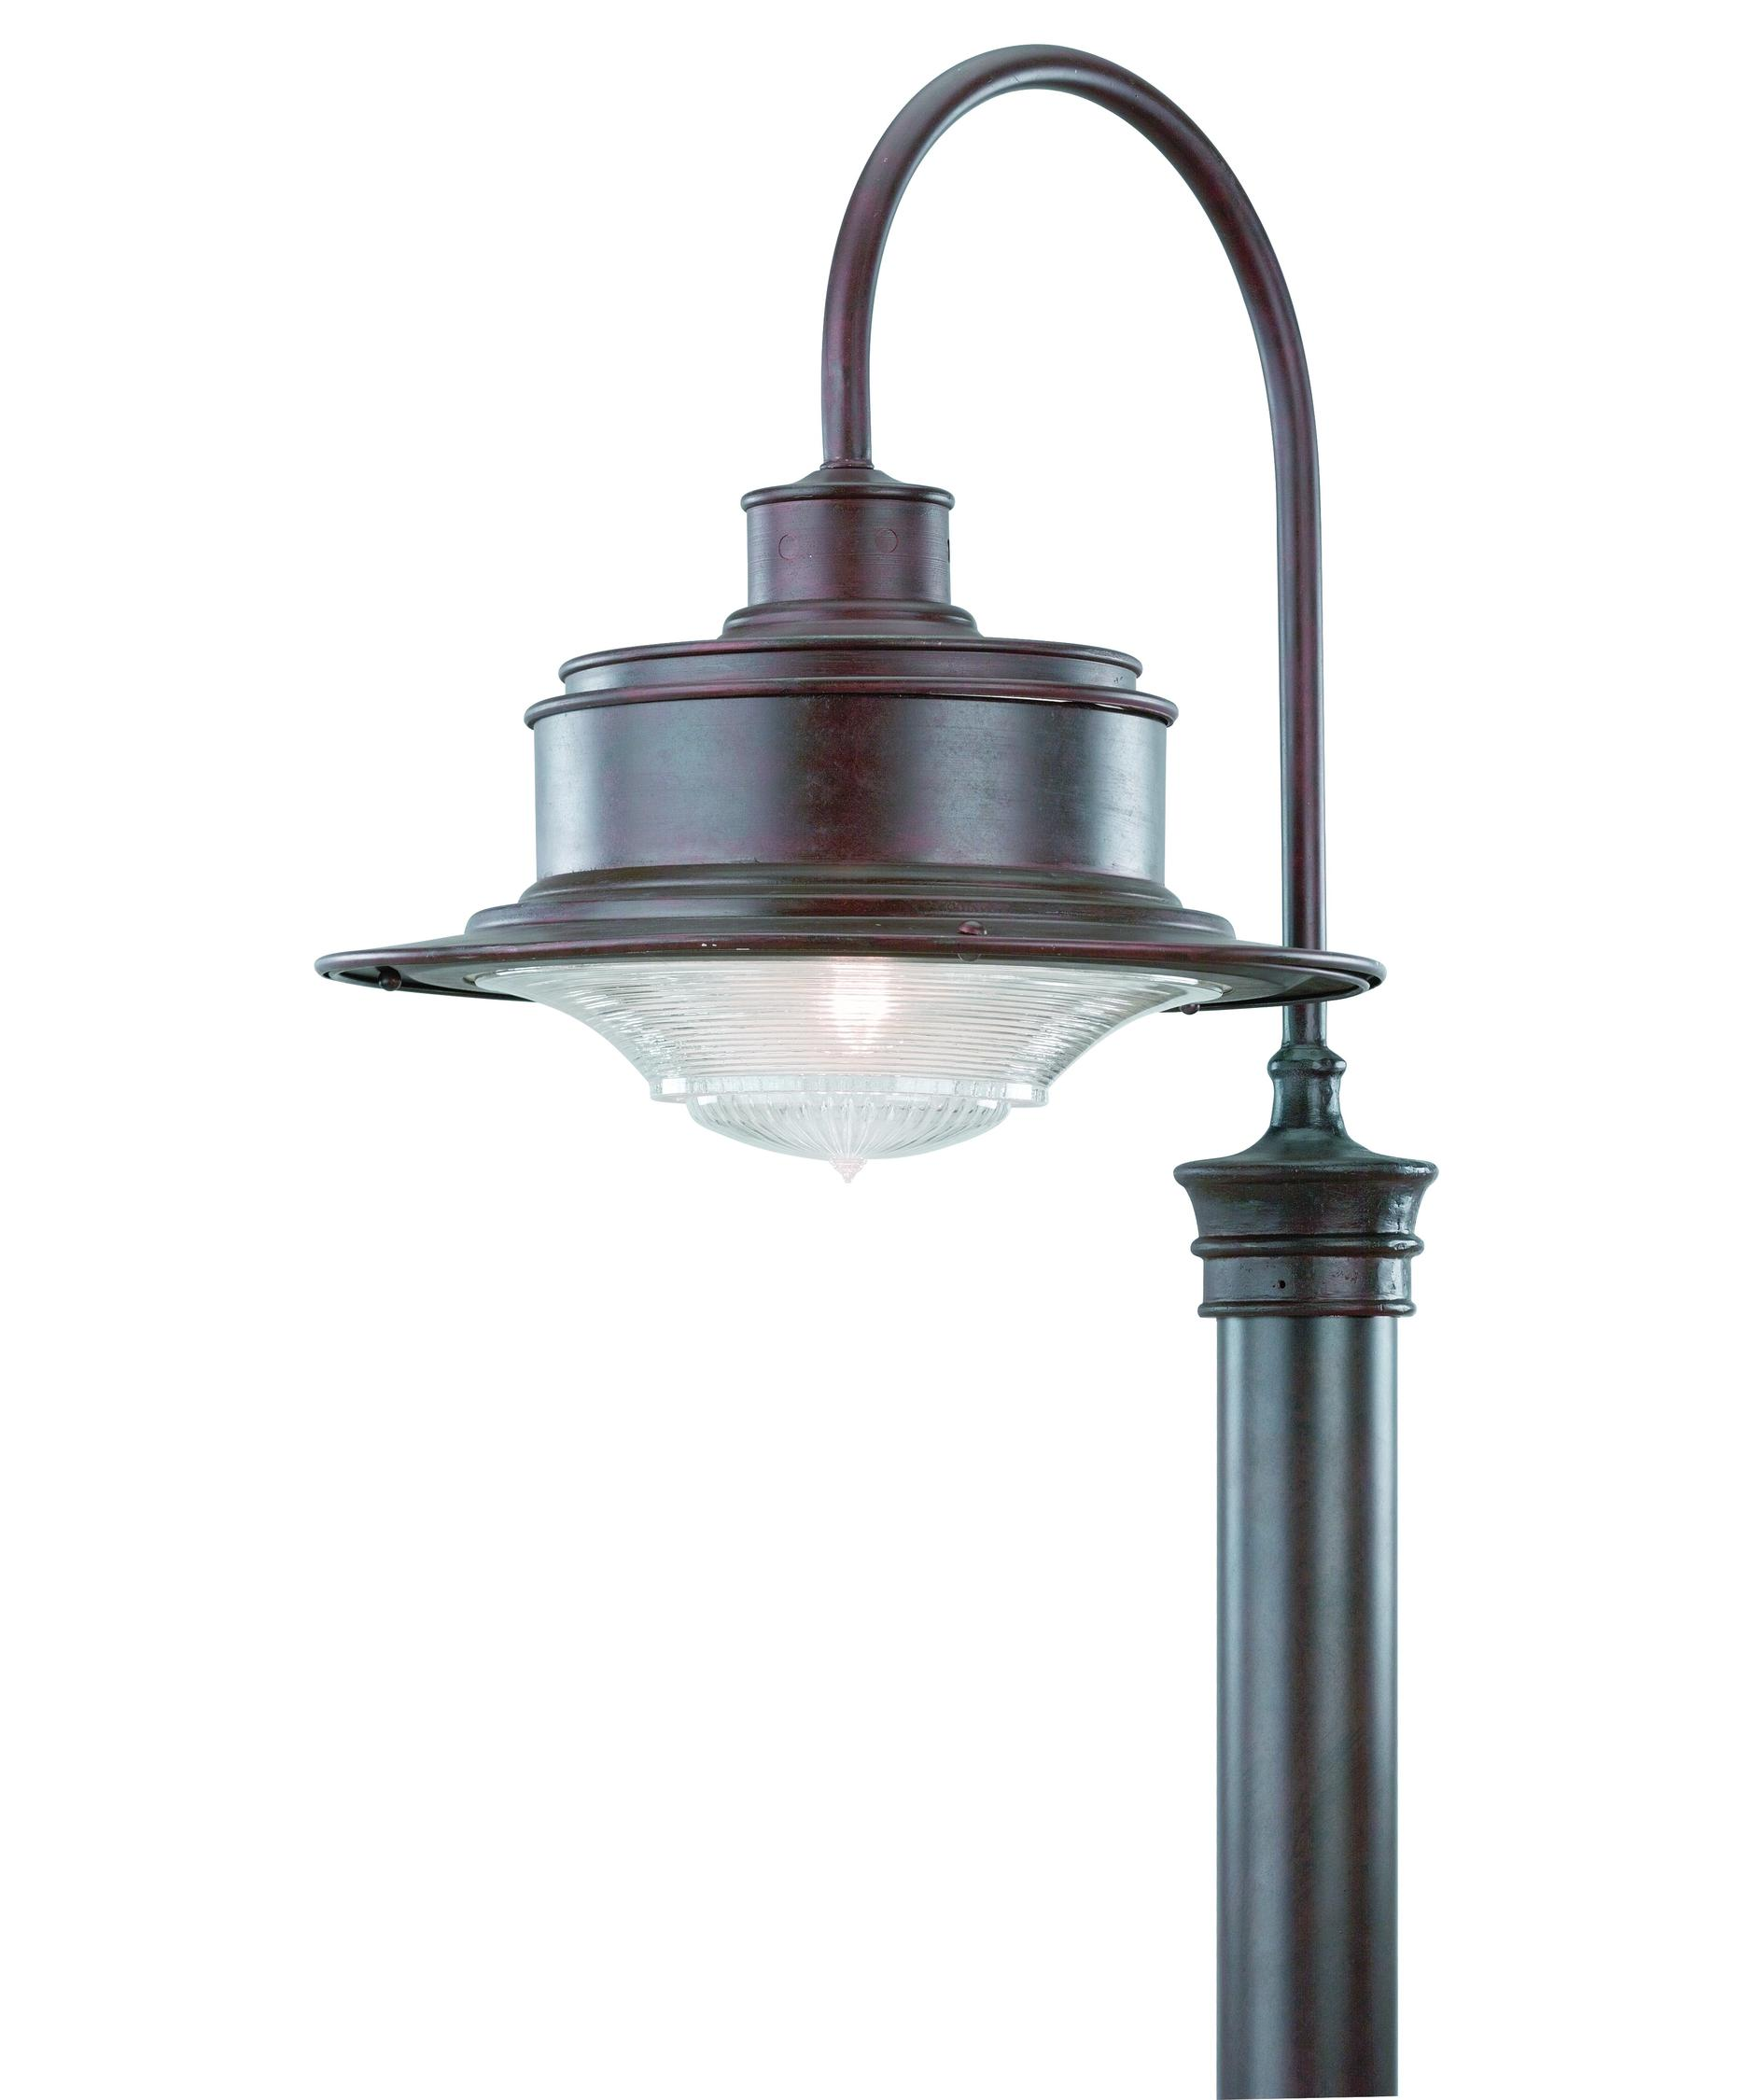 Outdoor Street Post Lights: Troy Lighting P9394 South Street 1 Light Outdoor Post Lamp